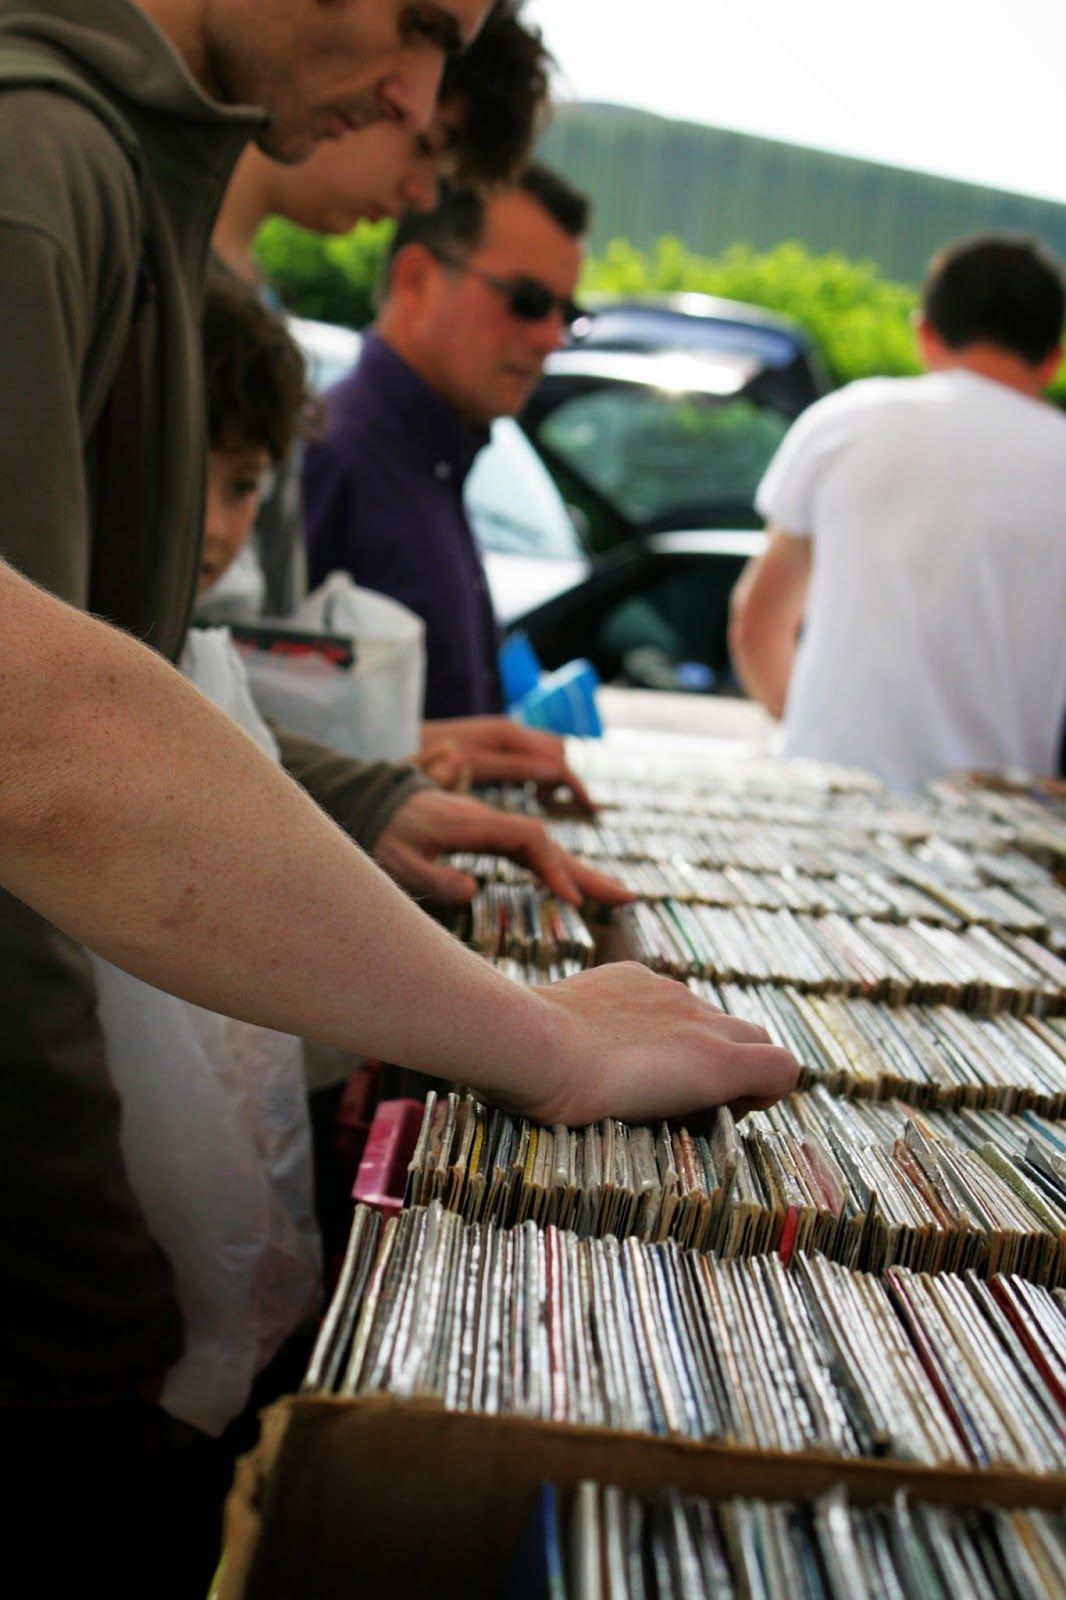 Stand vinyles brocante musicale